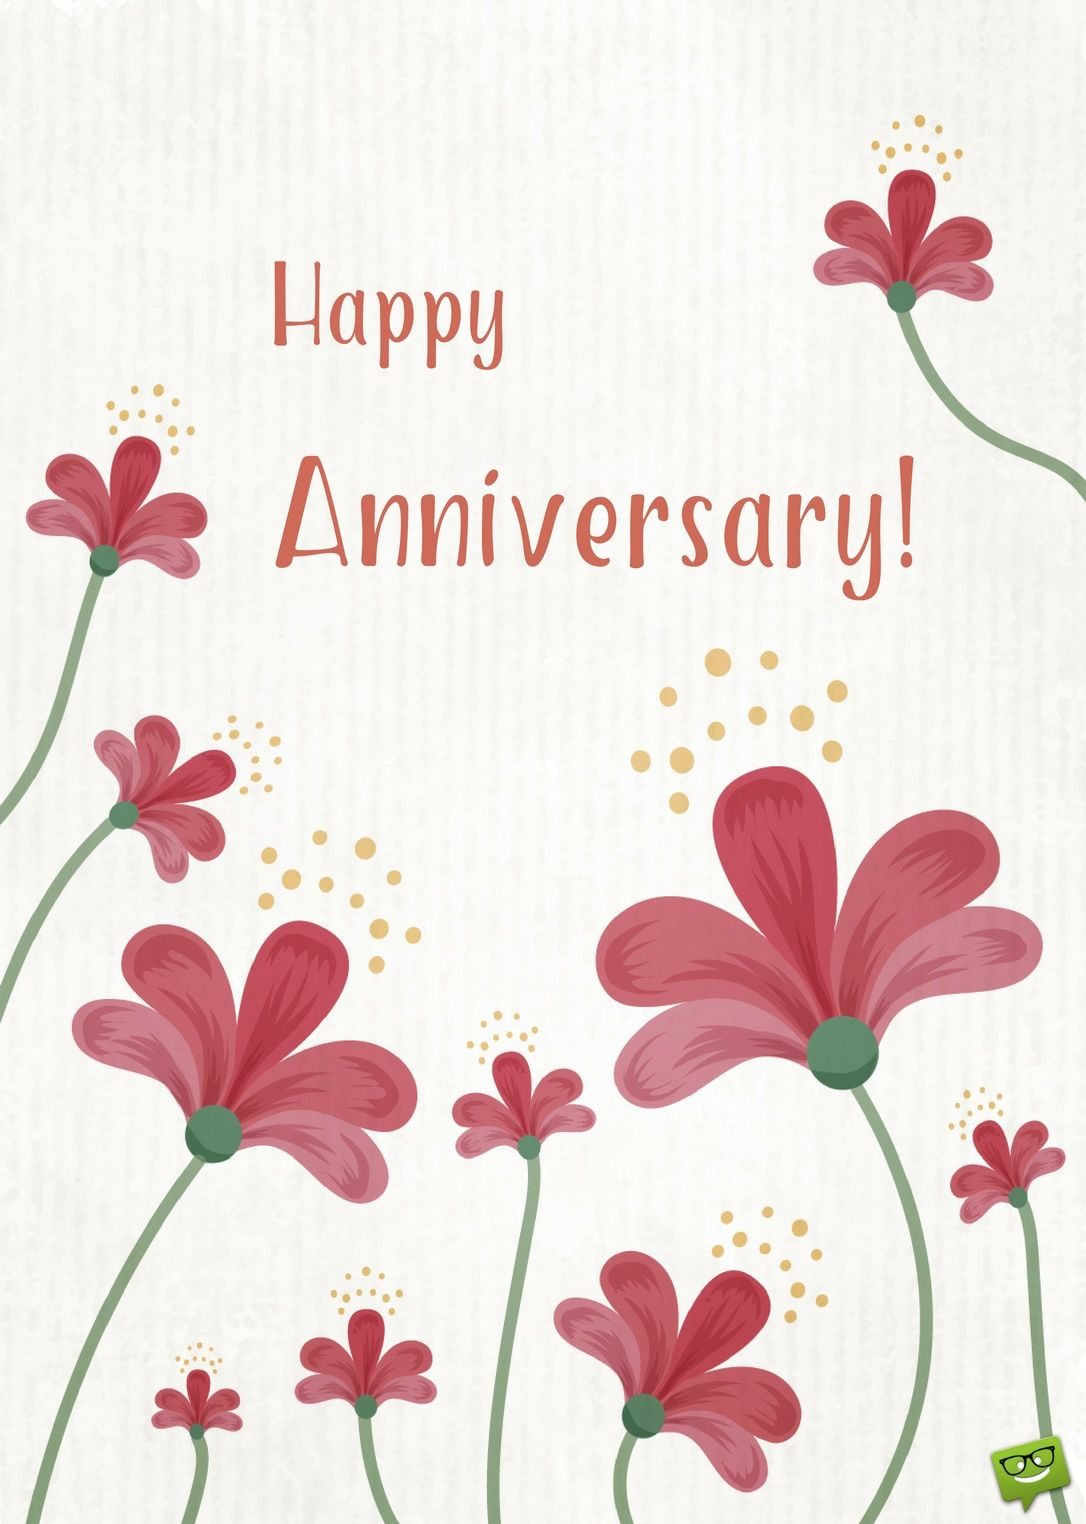 Happy Anniversary Images Birthday Buon Compleanno Compleanno En